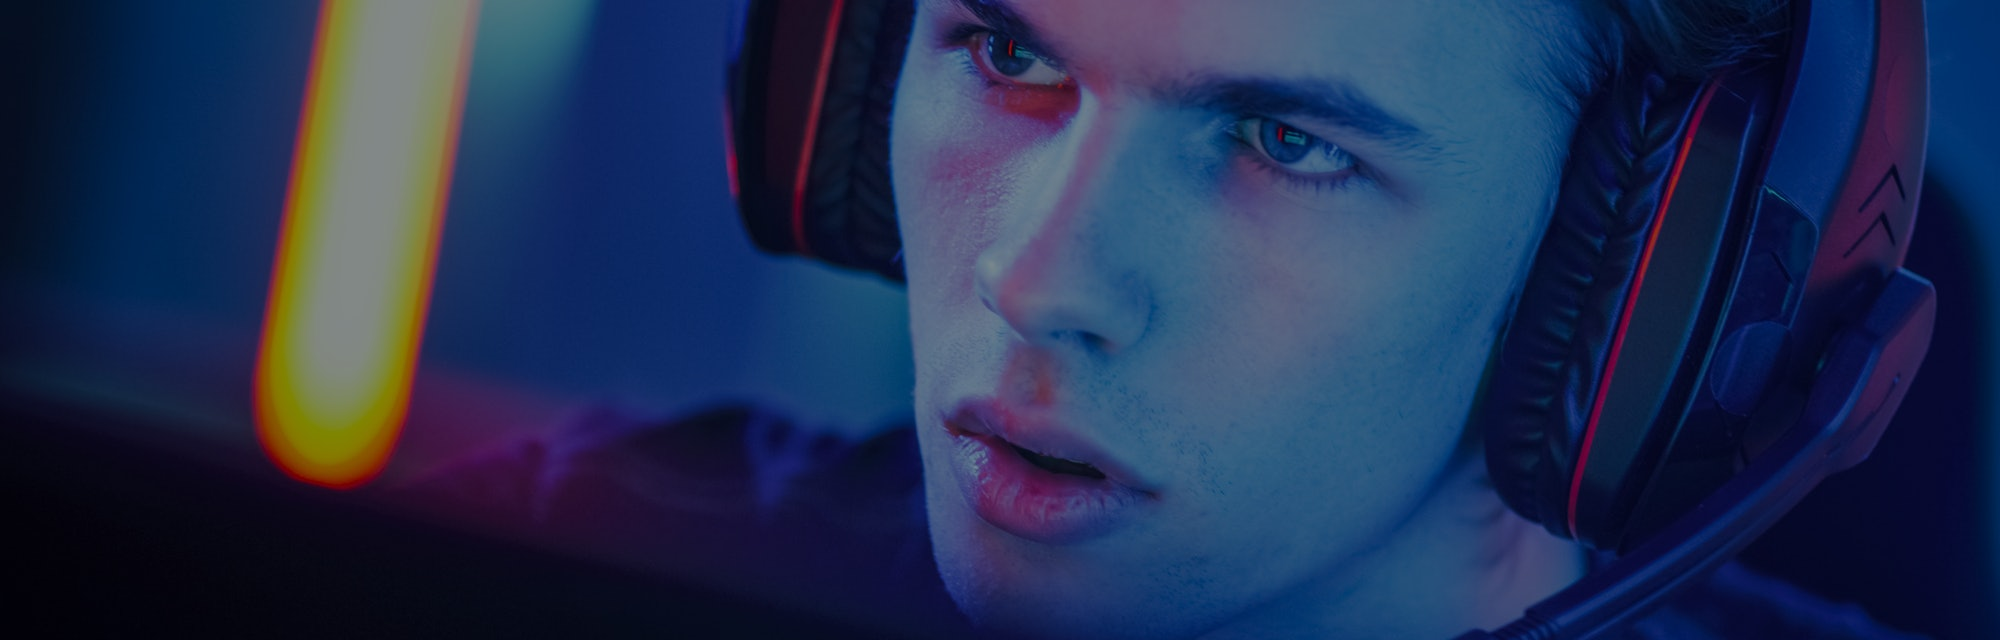 Portrait of the Young Handsome Pro Gamer Playing in Online Video Game, talks with Team Players through Microphone. Neon Colored Room. e-Sport Cyber Games Internet Championship.